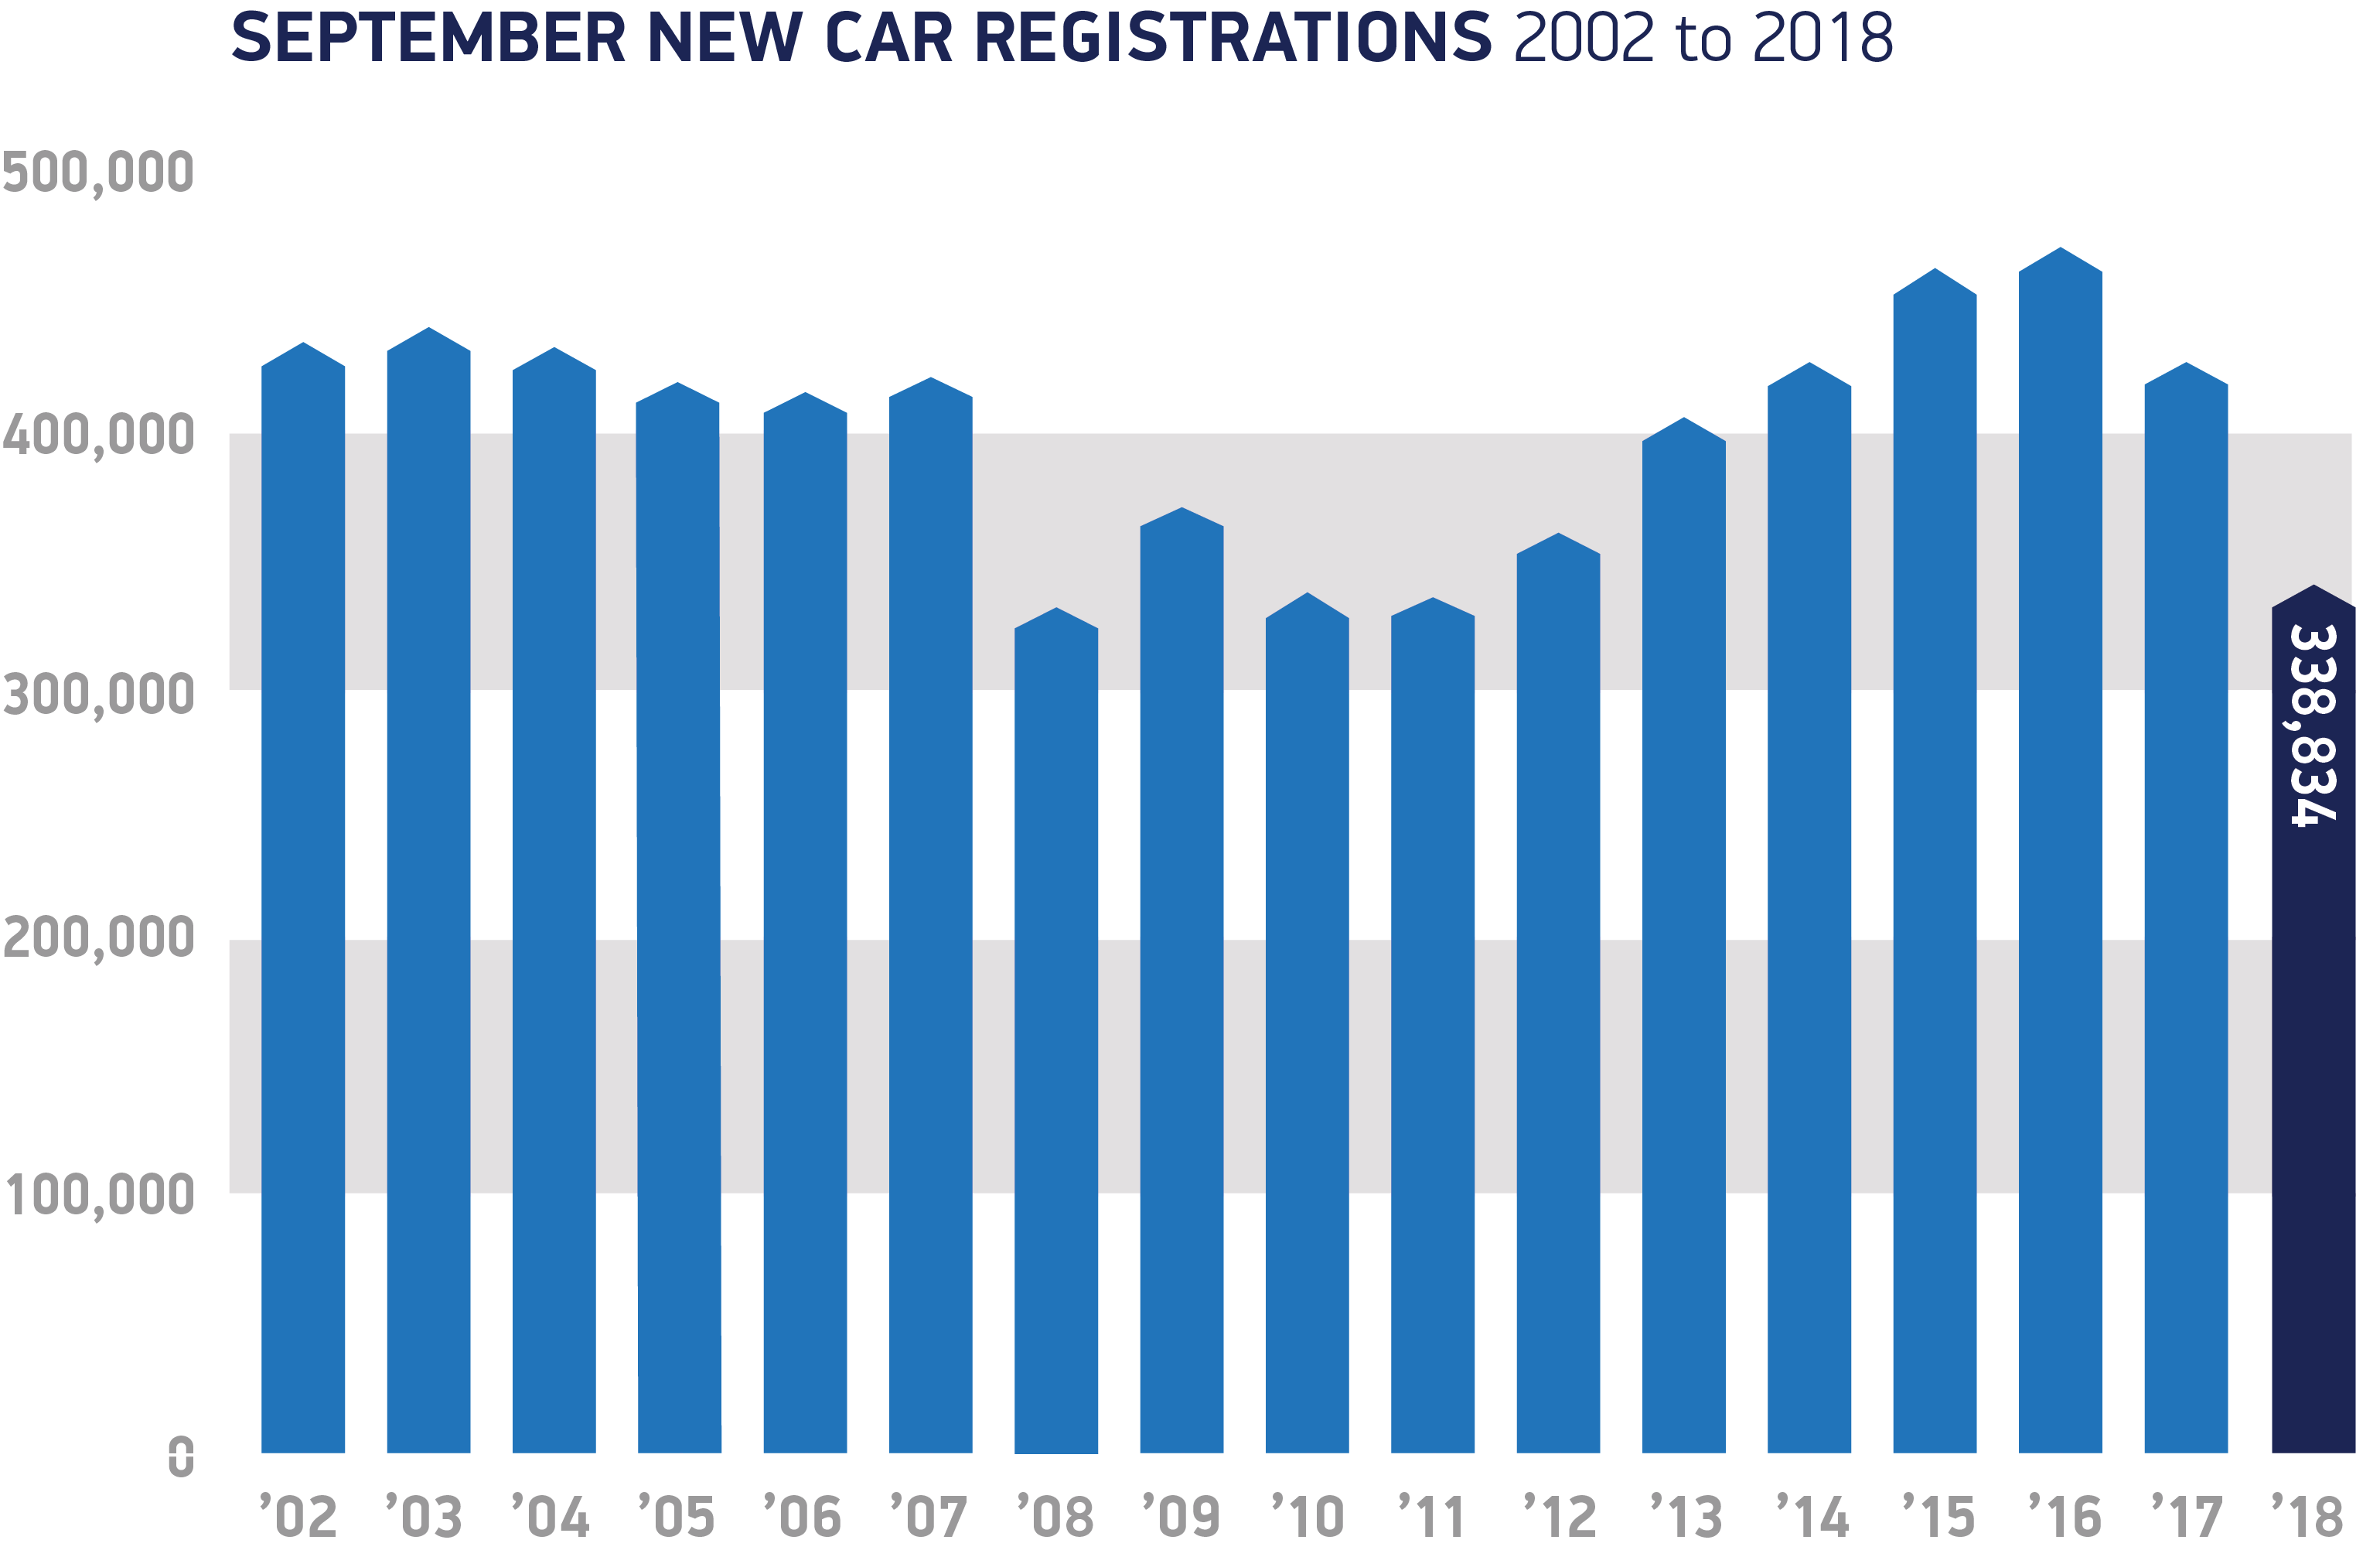 September registrations 2002 to 2018